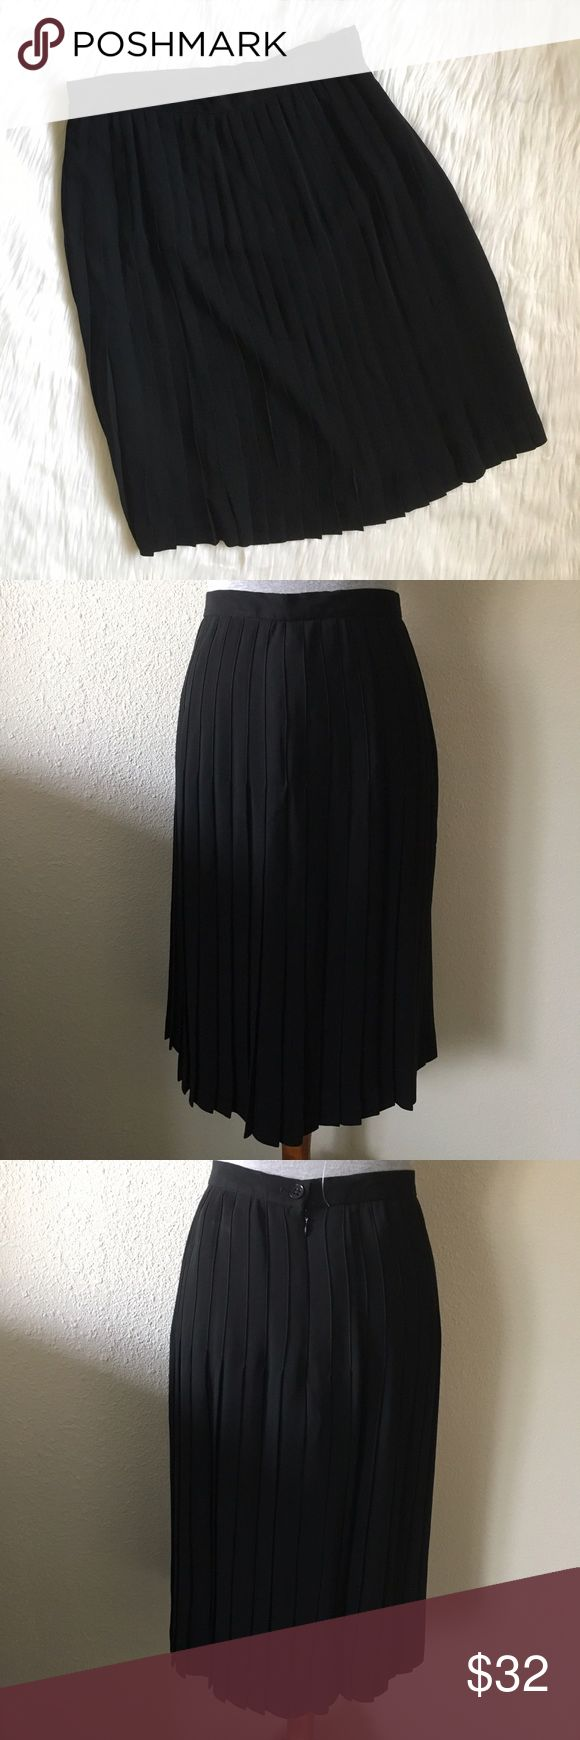 New Lauren Ralph Lauren Black Pleated Midi Skirt new lauren ralph lauren black pleated midi skirt. micro pleated midis are so in! fully lined. easy to use in any season! tag was taken off but the plastic attachment is still in tact. show pinned on the mannequin who's measurements are 34-26-35. measurements: waist (across)- 15 inches / length- 26 inches. 10% off bundles of 2 items and 15% off bundles of 3+ items. Lauren Ralph Lauren Skirts Midi